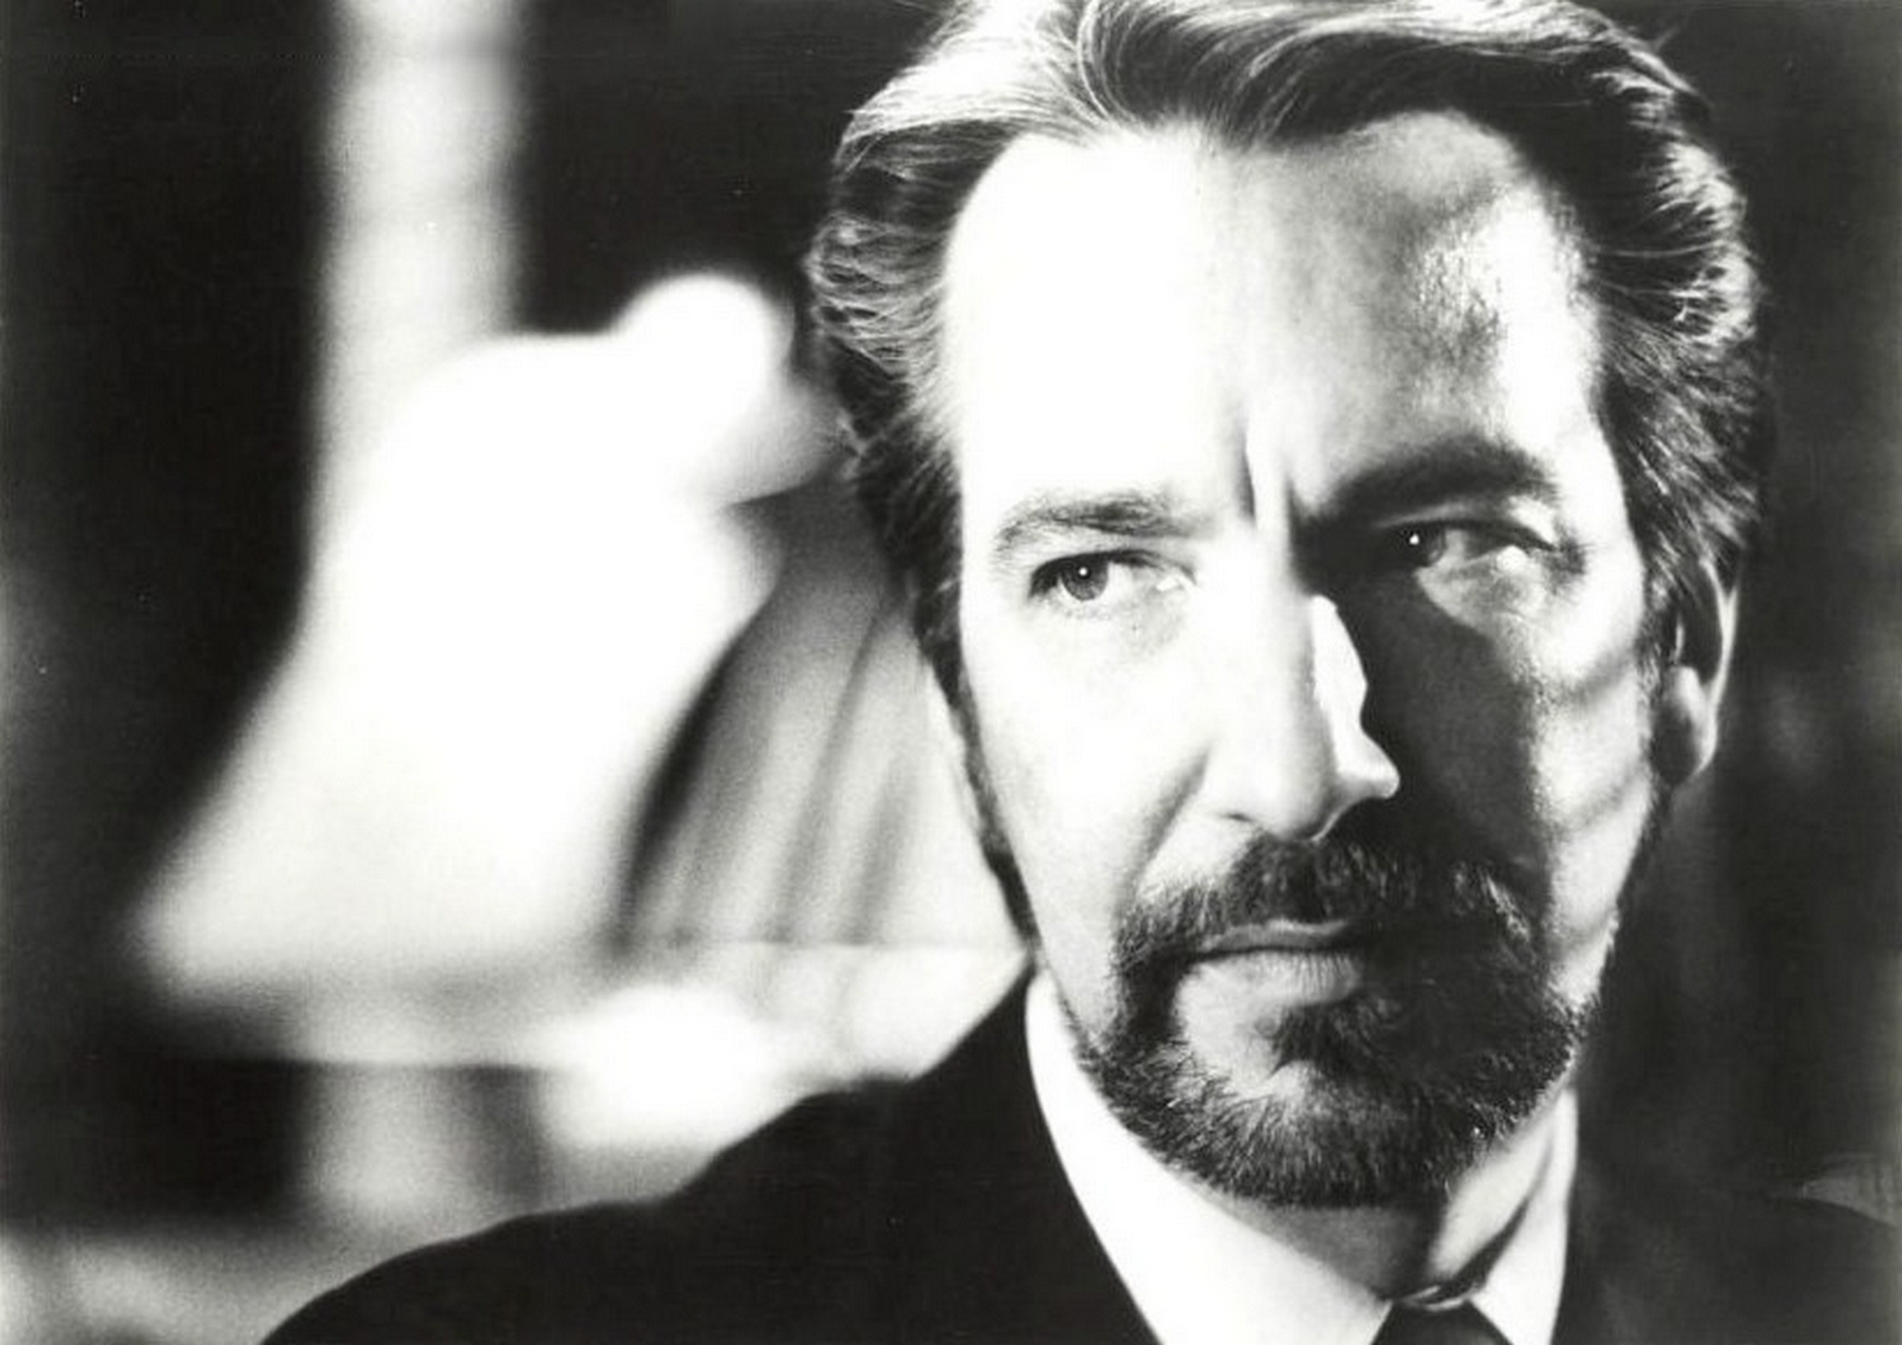 Hans-in-black-white-hans-gruber-8625230-1902-1345.jpg